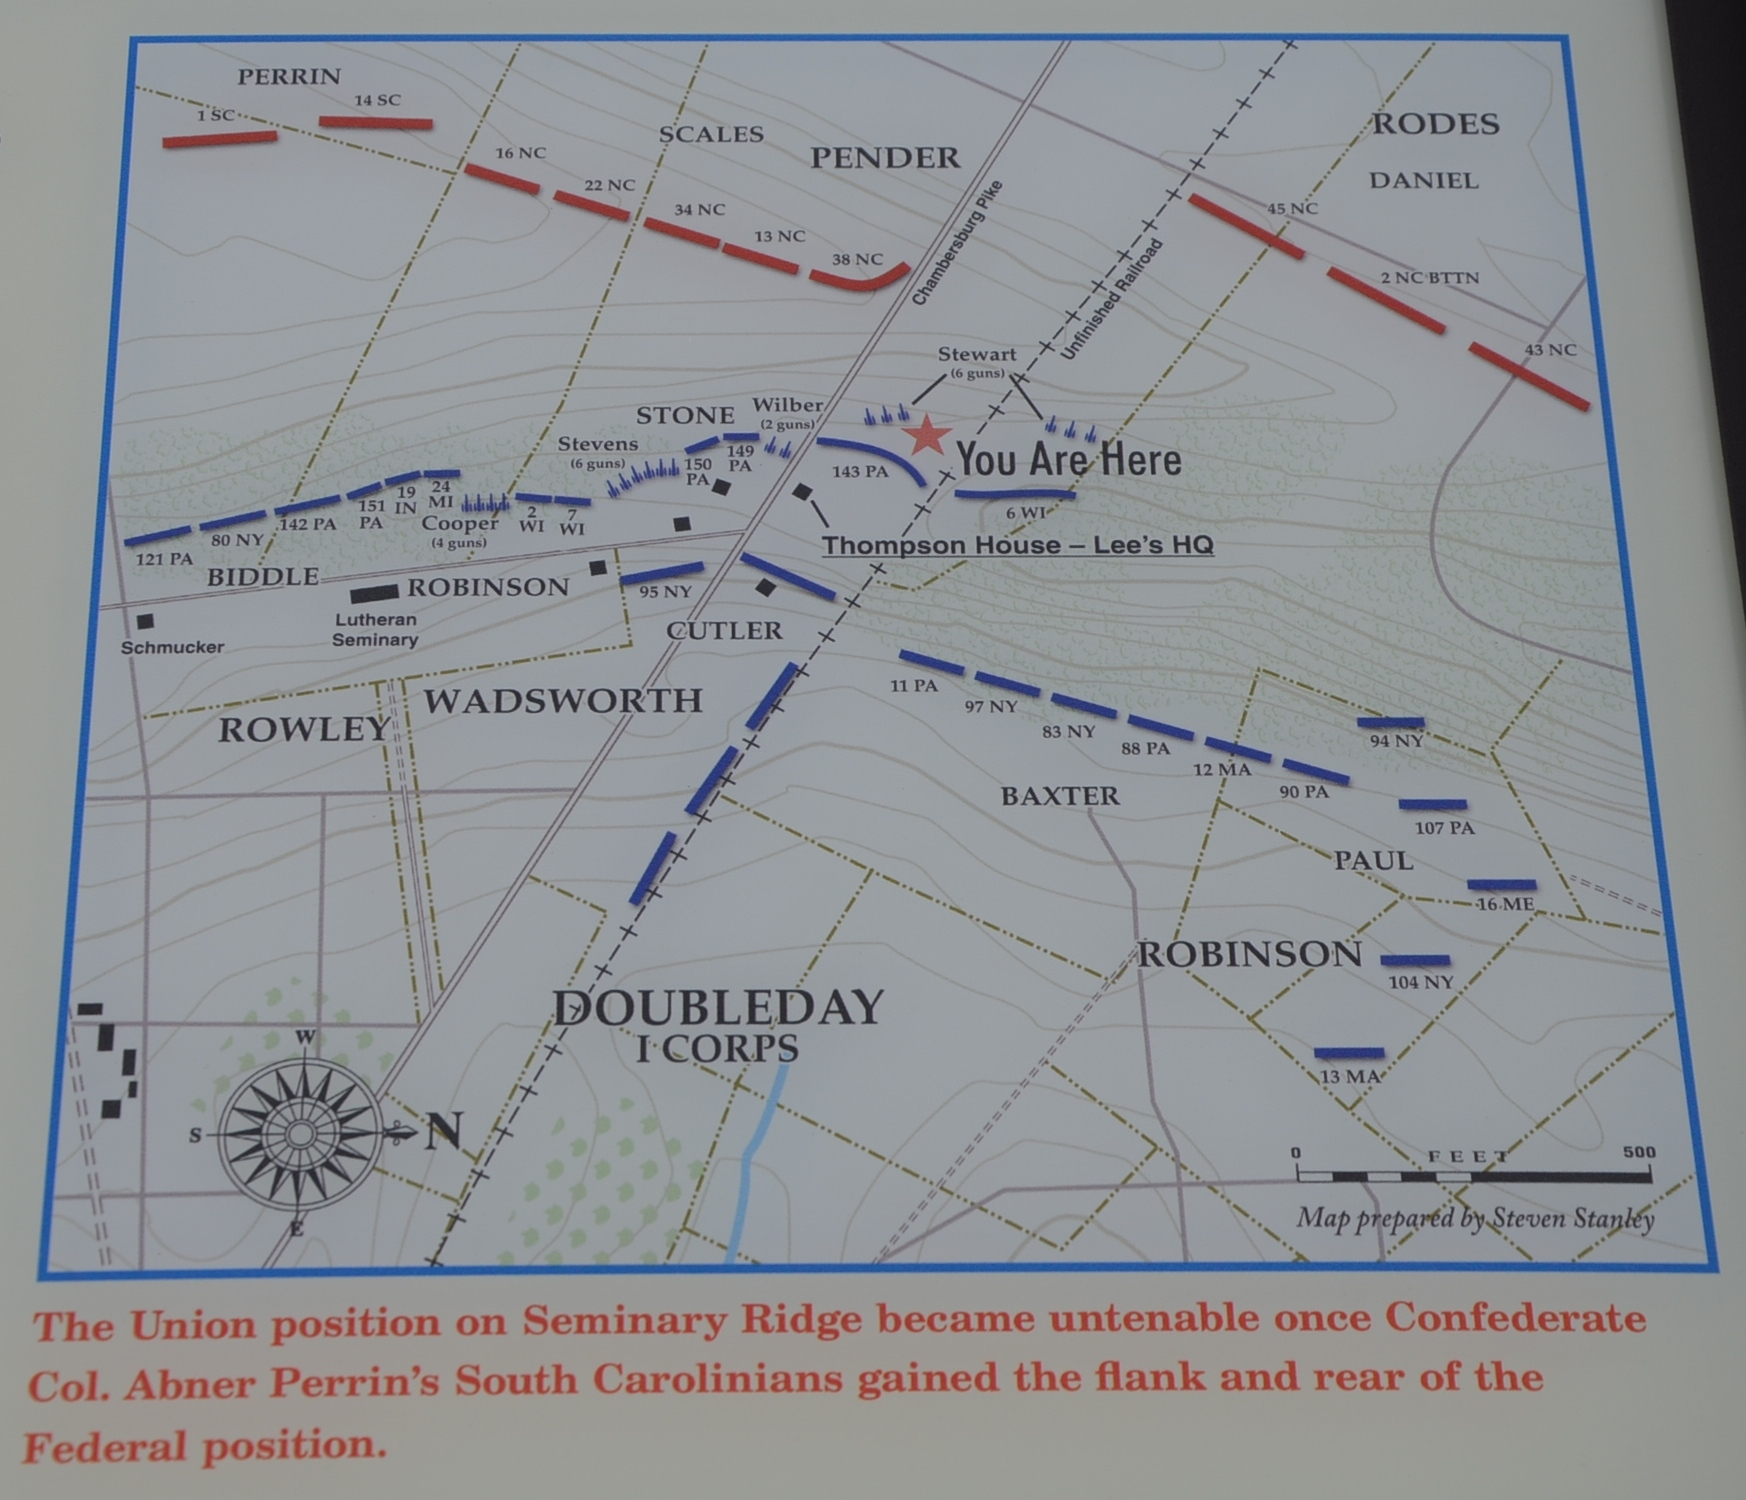 Map of This Position on Seminary Ridge